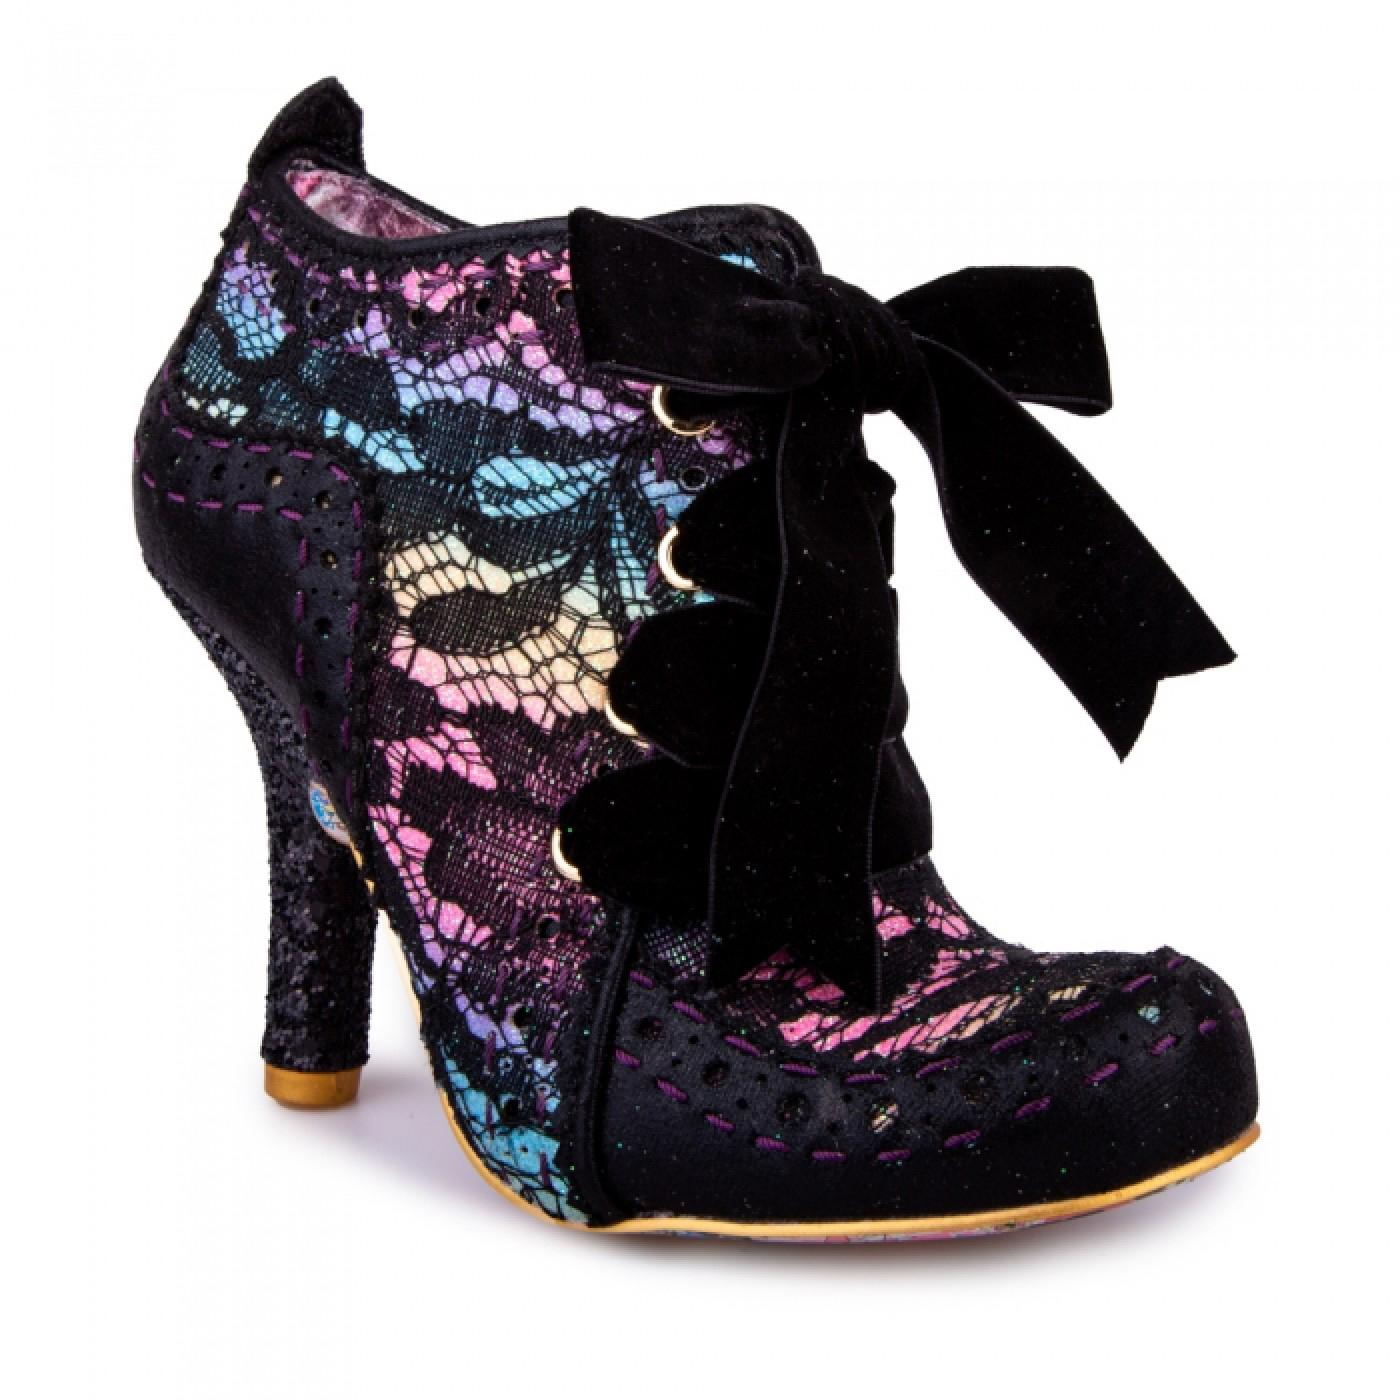 Abigails 3rd Party IRREGULAR CHOICE Heels (Black)